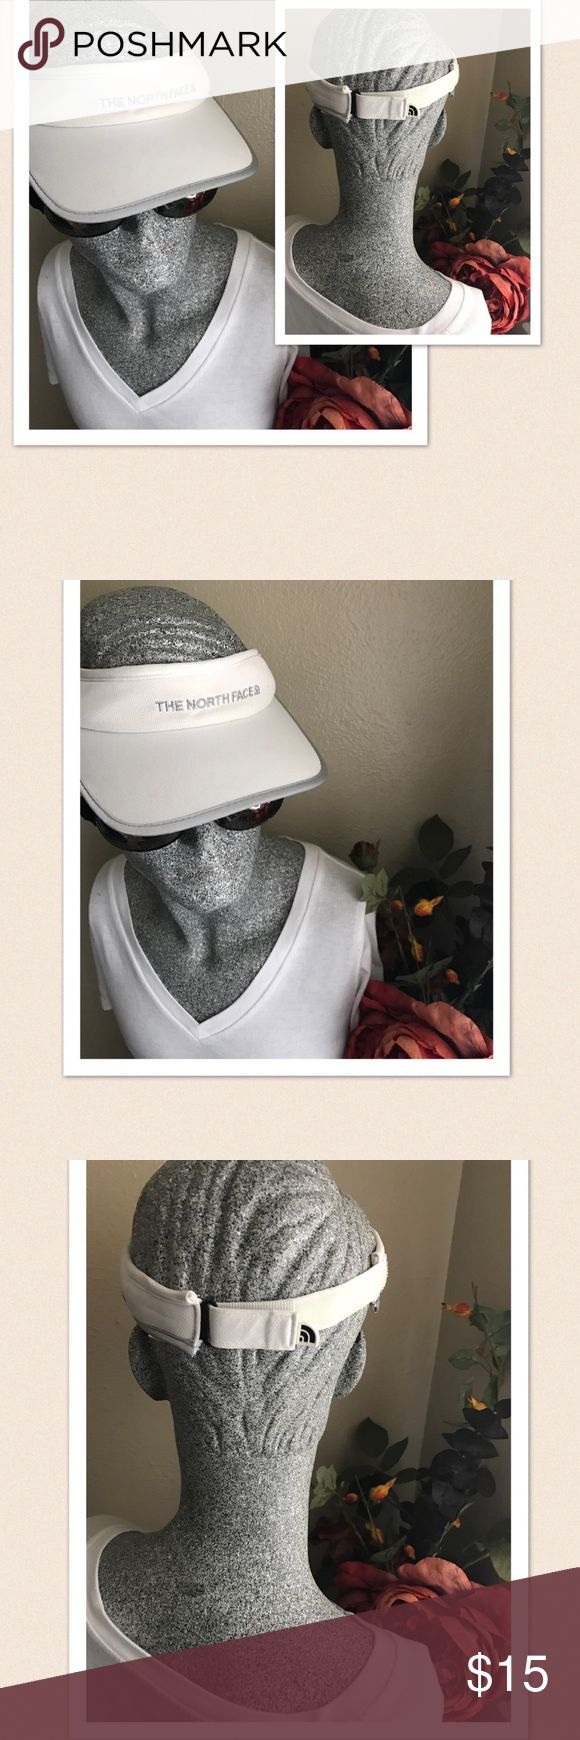 The Northface Visor Hat Unisex Unisex.. The Northface Visor Hat. Size: One size. Color: White & Gray. Velcro closure at the back. Gently worn. Excellent condition. If this condition is not right for you do not purchase. The North Face Accessories Hats